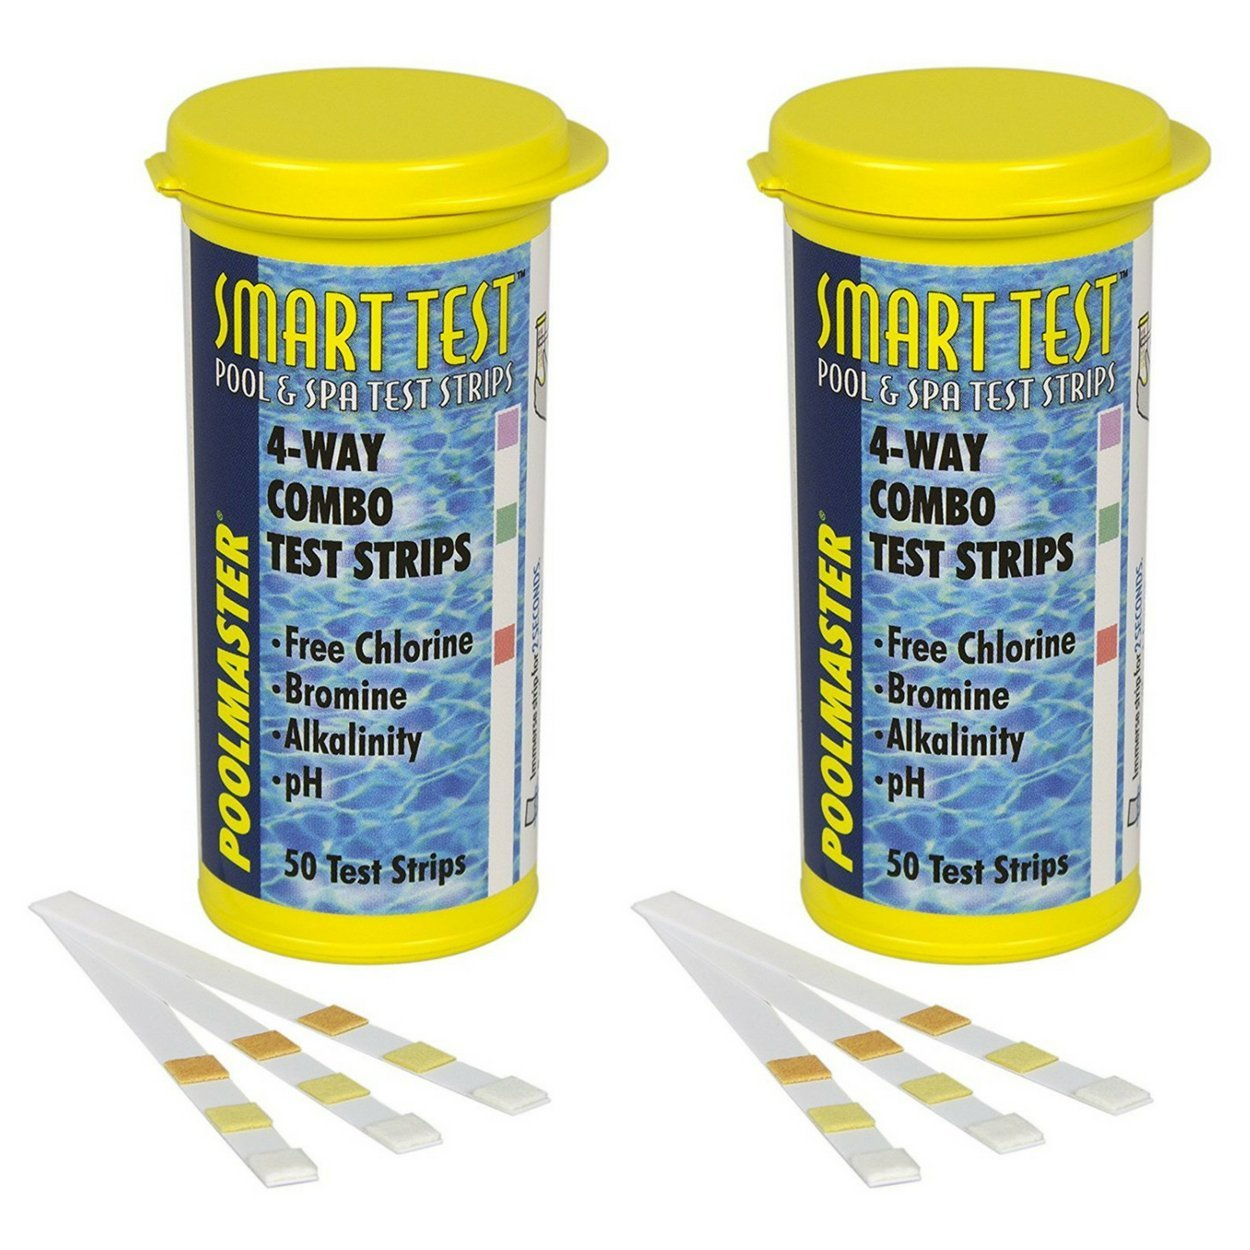 Poolmaster 22211 Smart Test 4-Way Pool and Spa Test Strips - 50ct, 2-Pack by Poolmaster